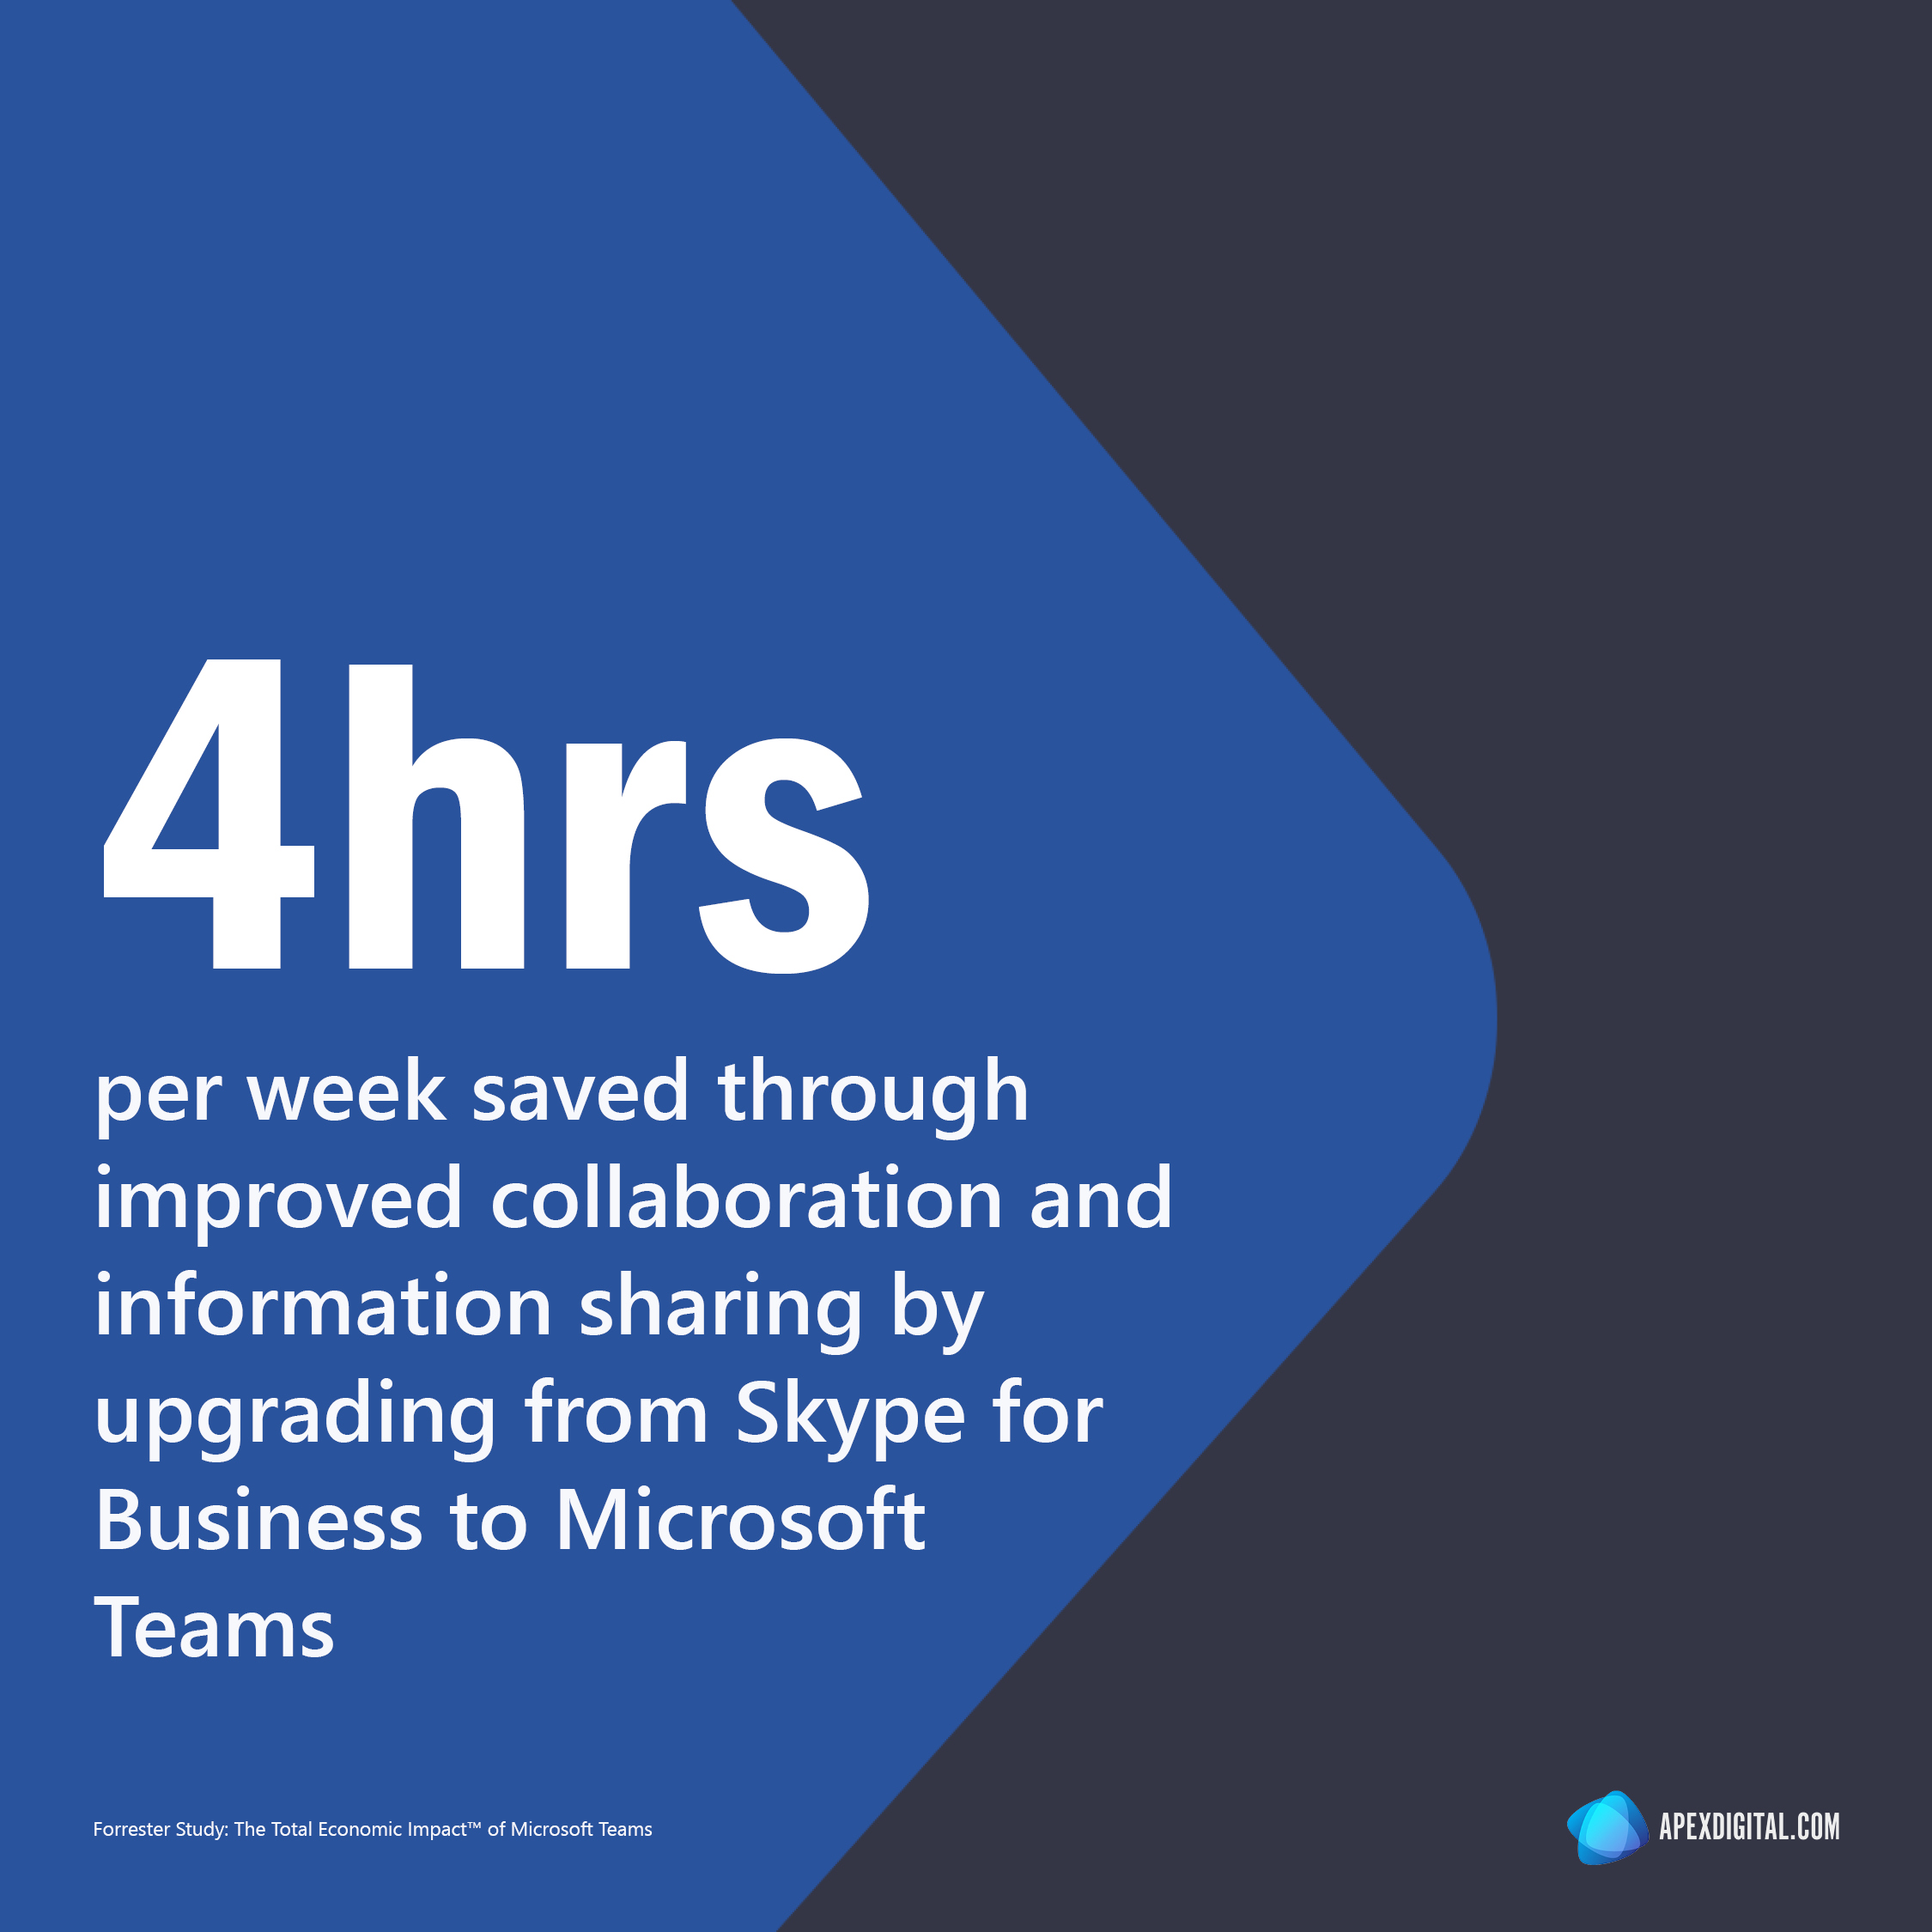 4 hours per week are saved through improved collaboration and information sharing by upgrading from Skype for Business to Microsoft Teams